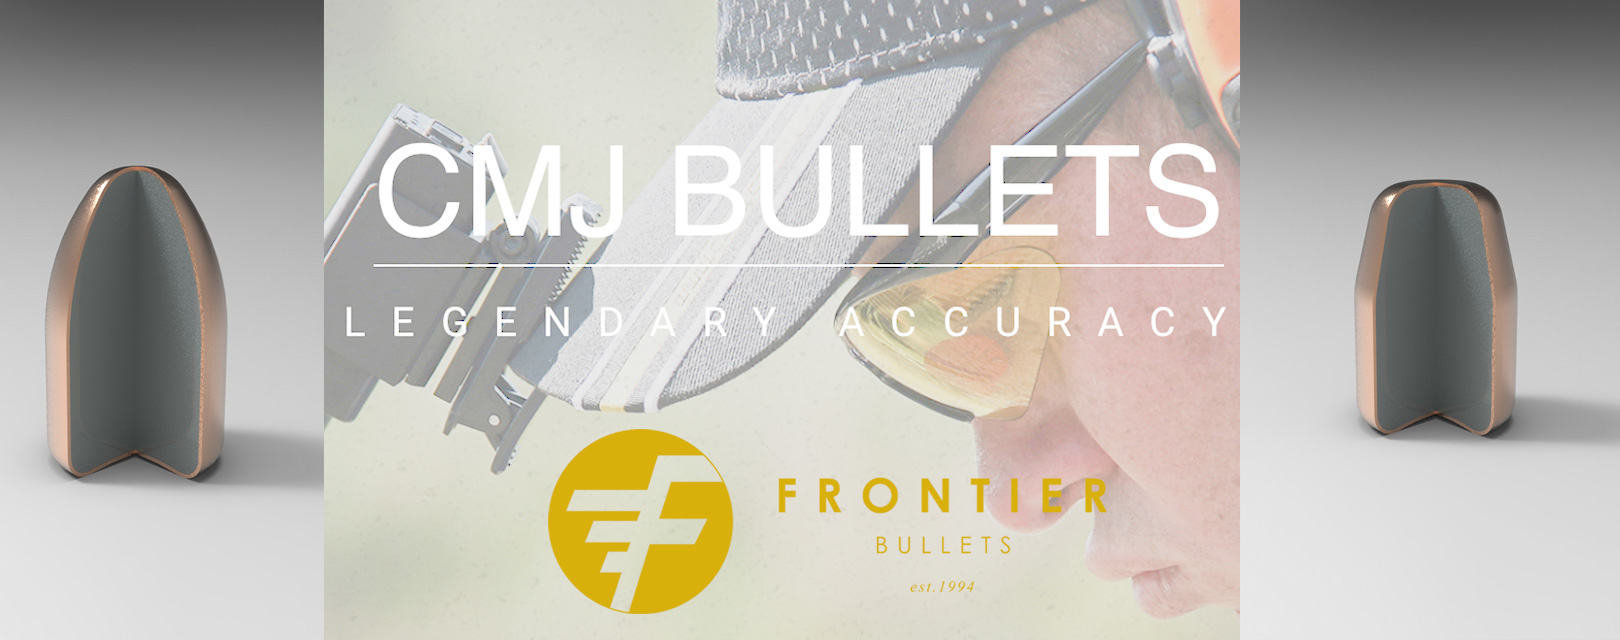 FrontierBullets